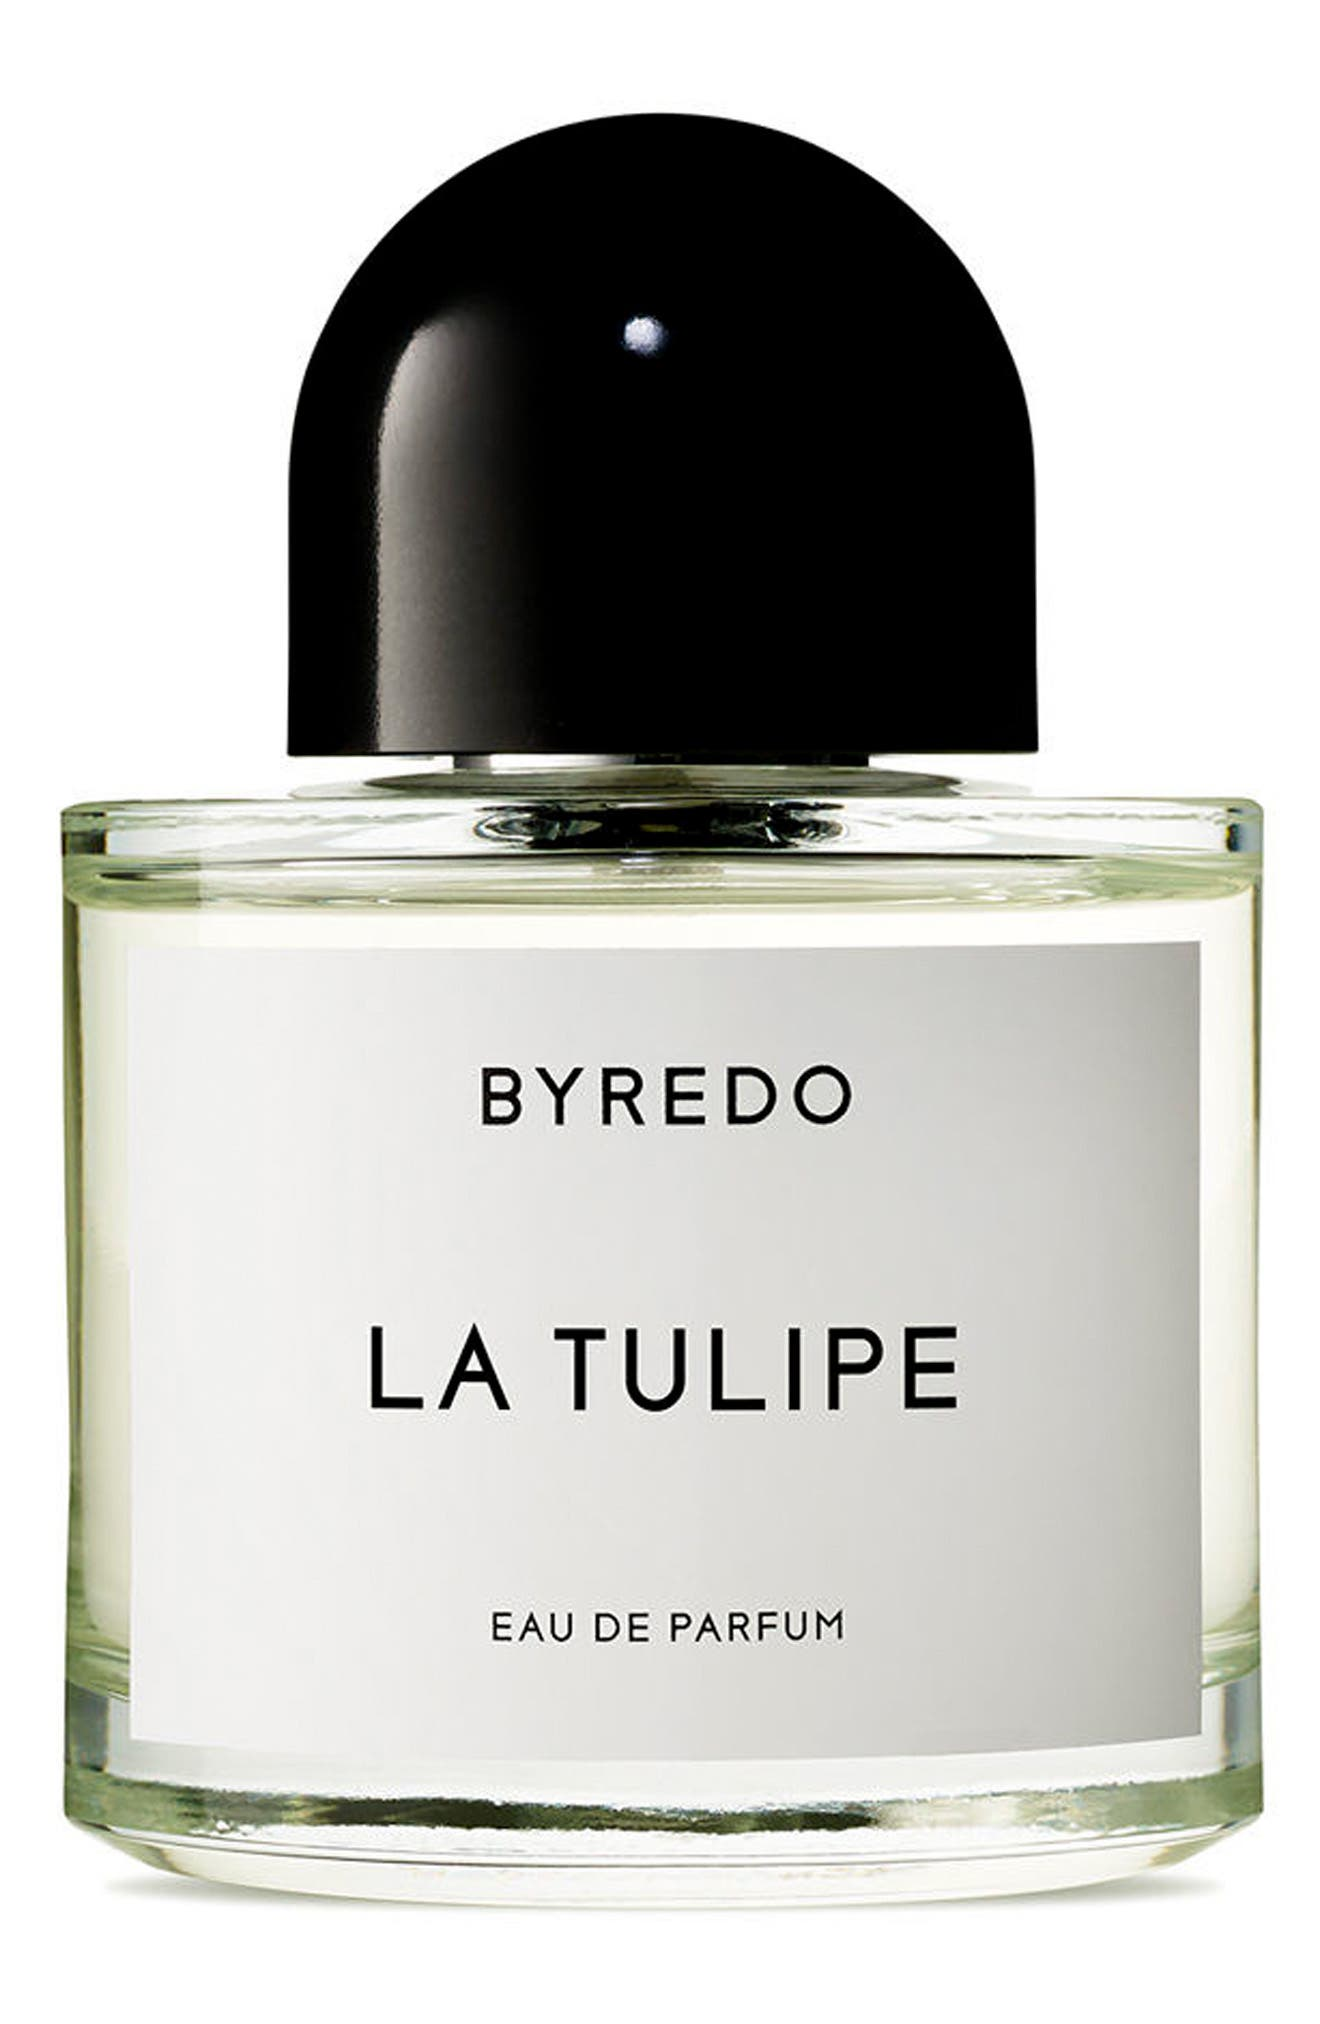 La Tulipe Eau de Parfum,                             Main thumbnail 1, color,                             No Color